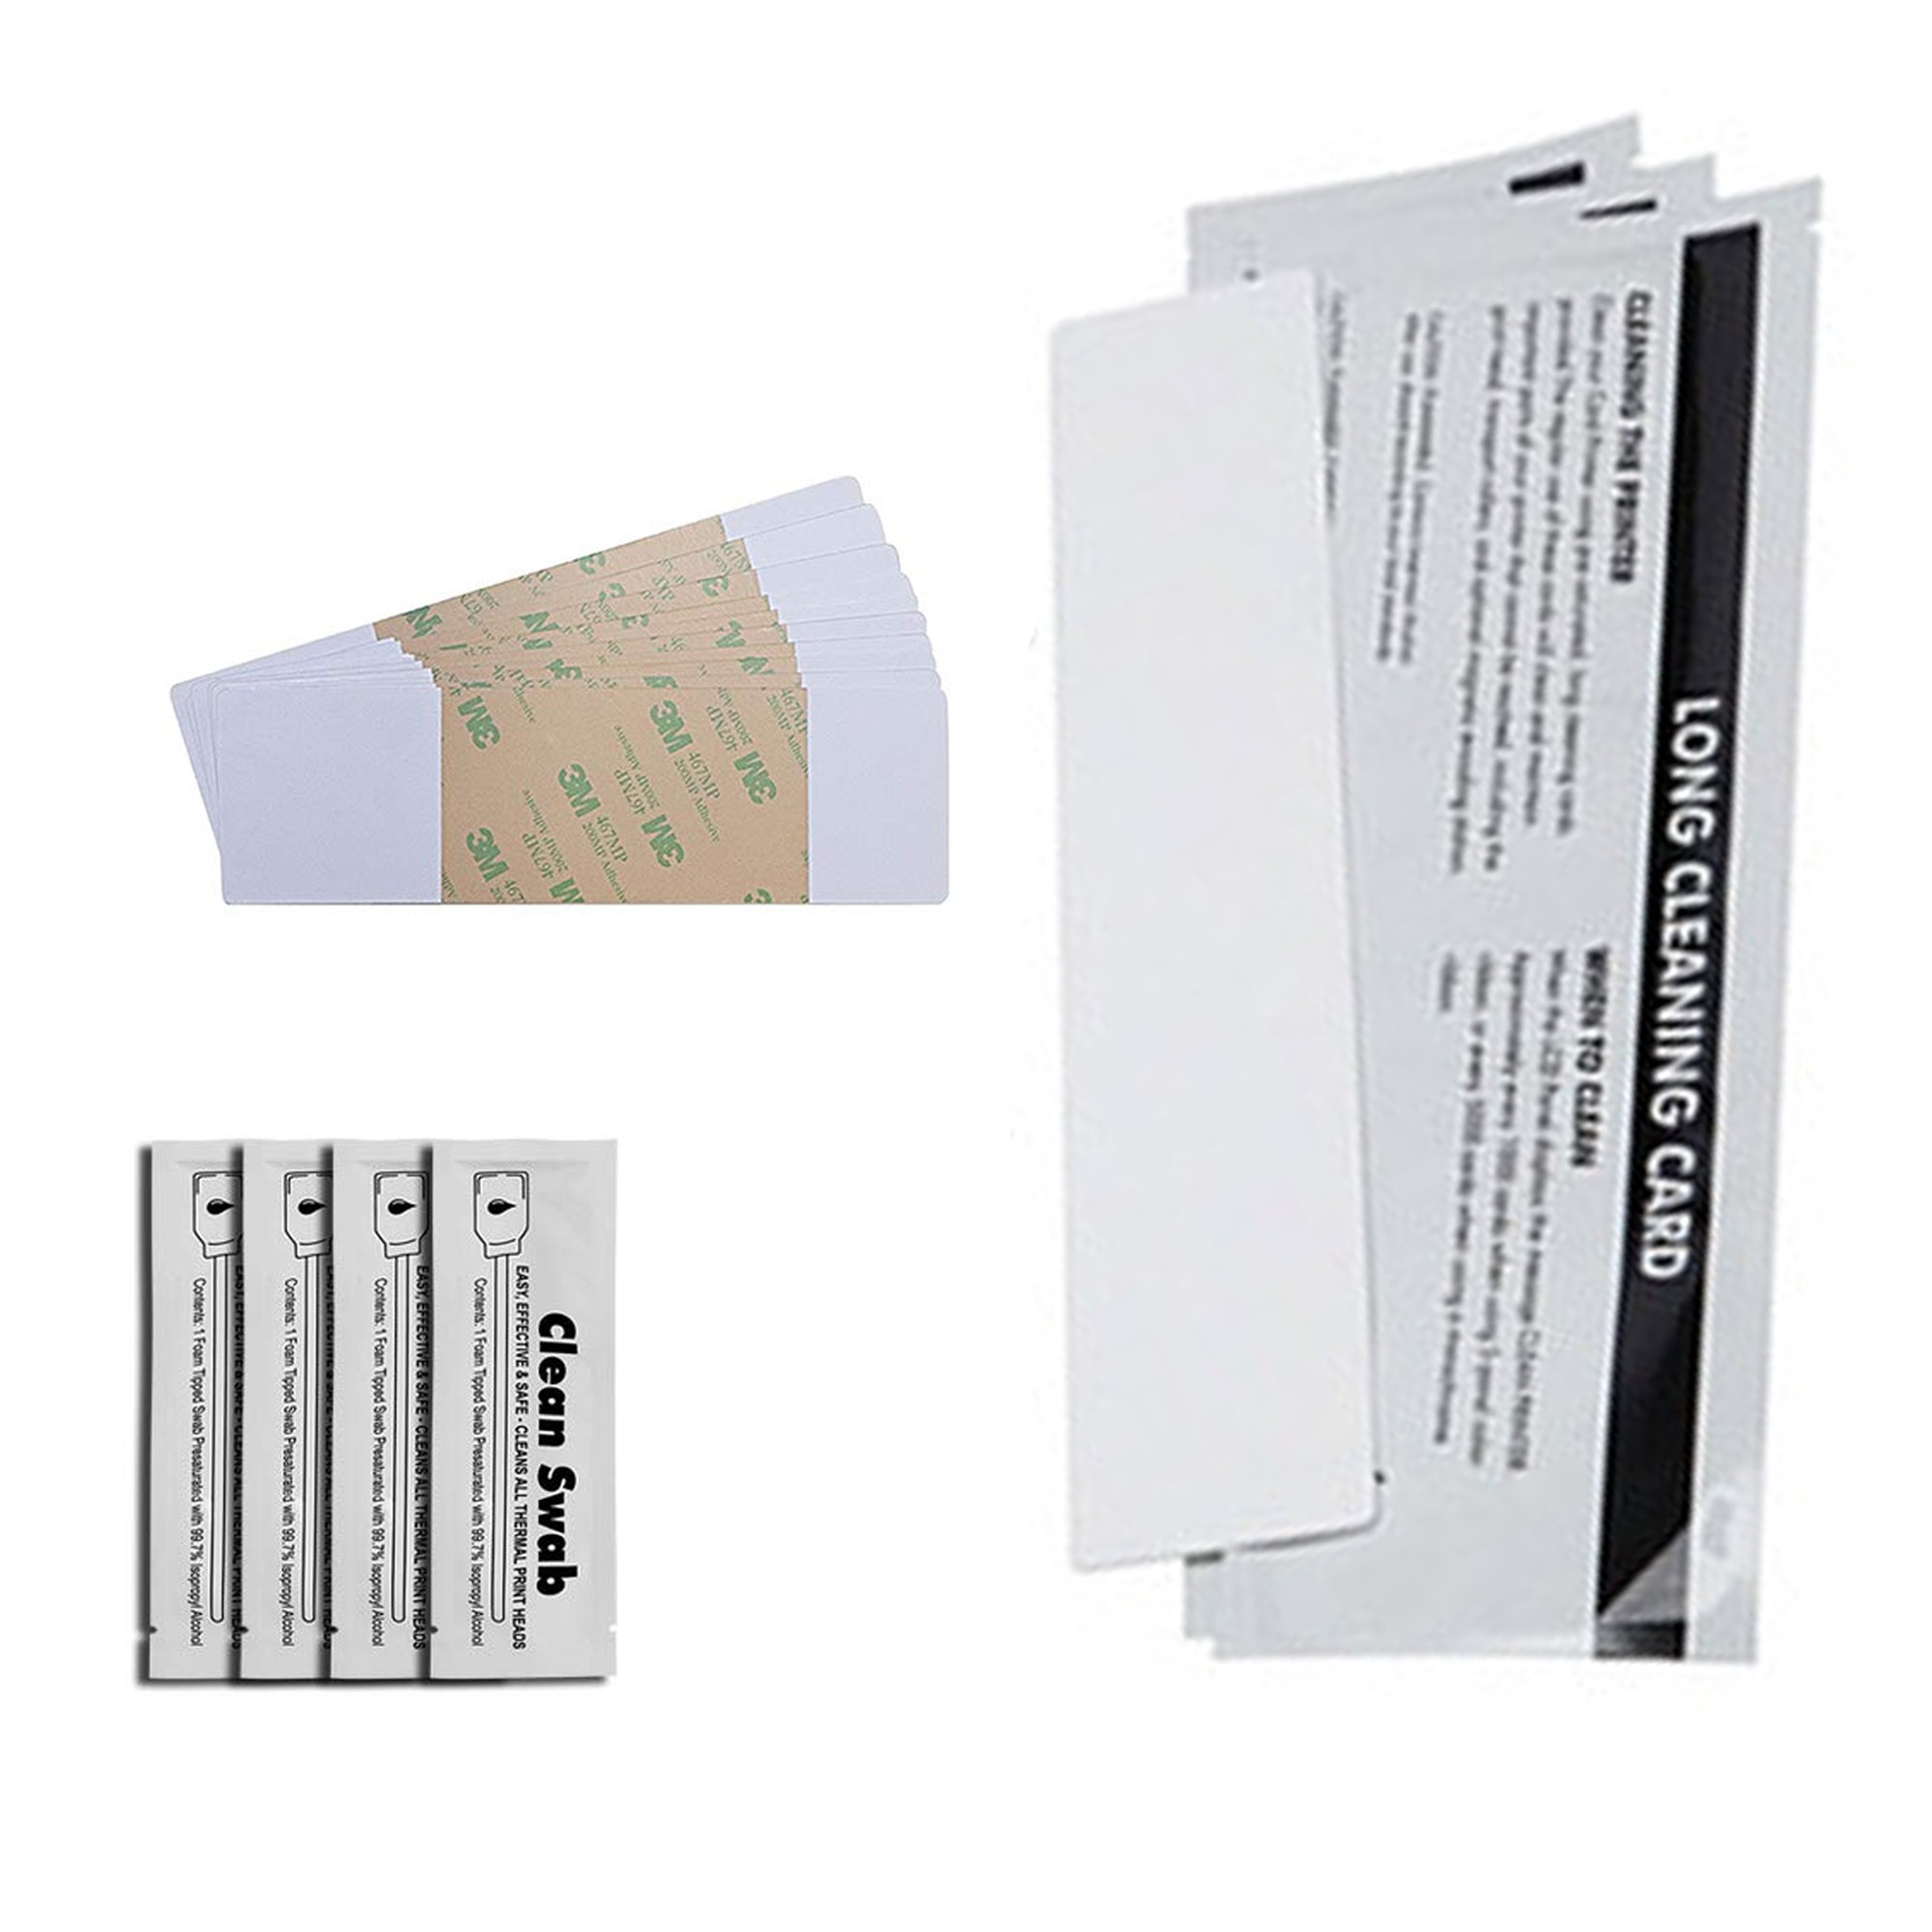 DuraClean™ 86177 Complete Printer Cleaning Kit for Fargo Printers - Cleaning Cards & Swabs